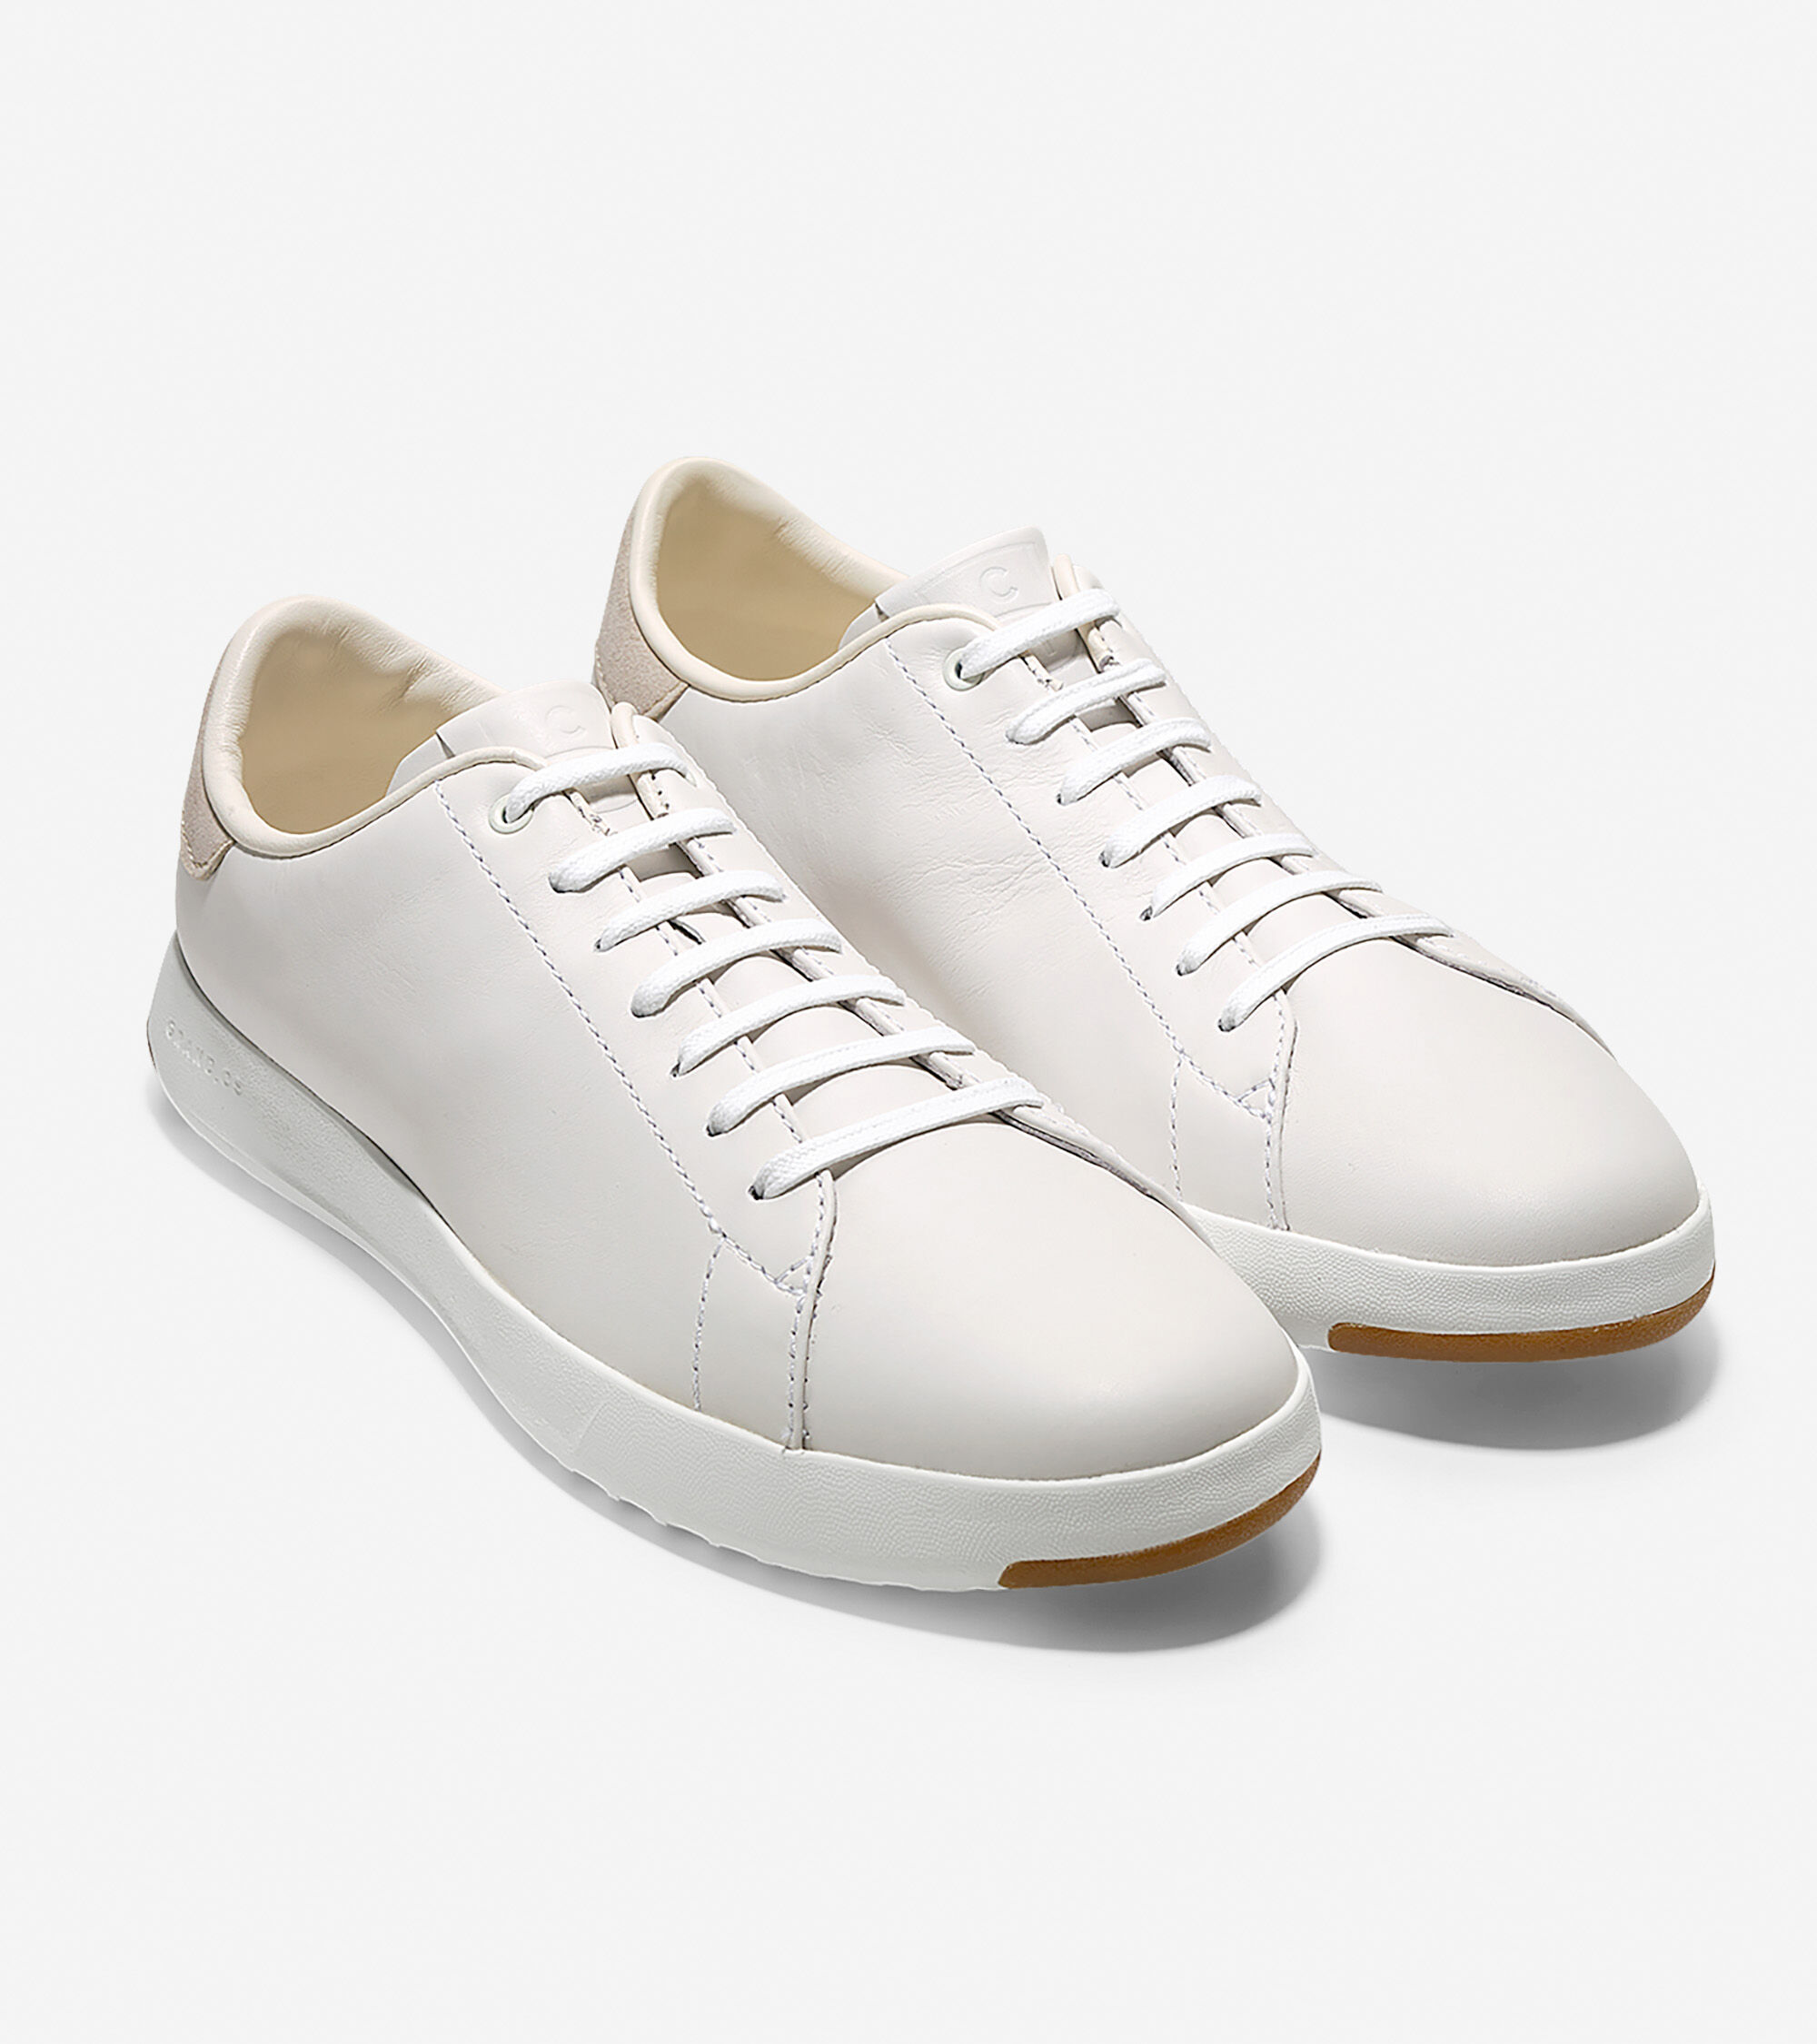 Cole Haan Mens Tennis Shoes